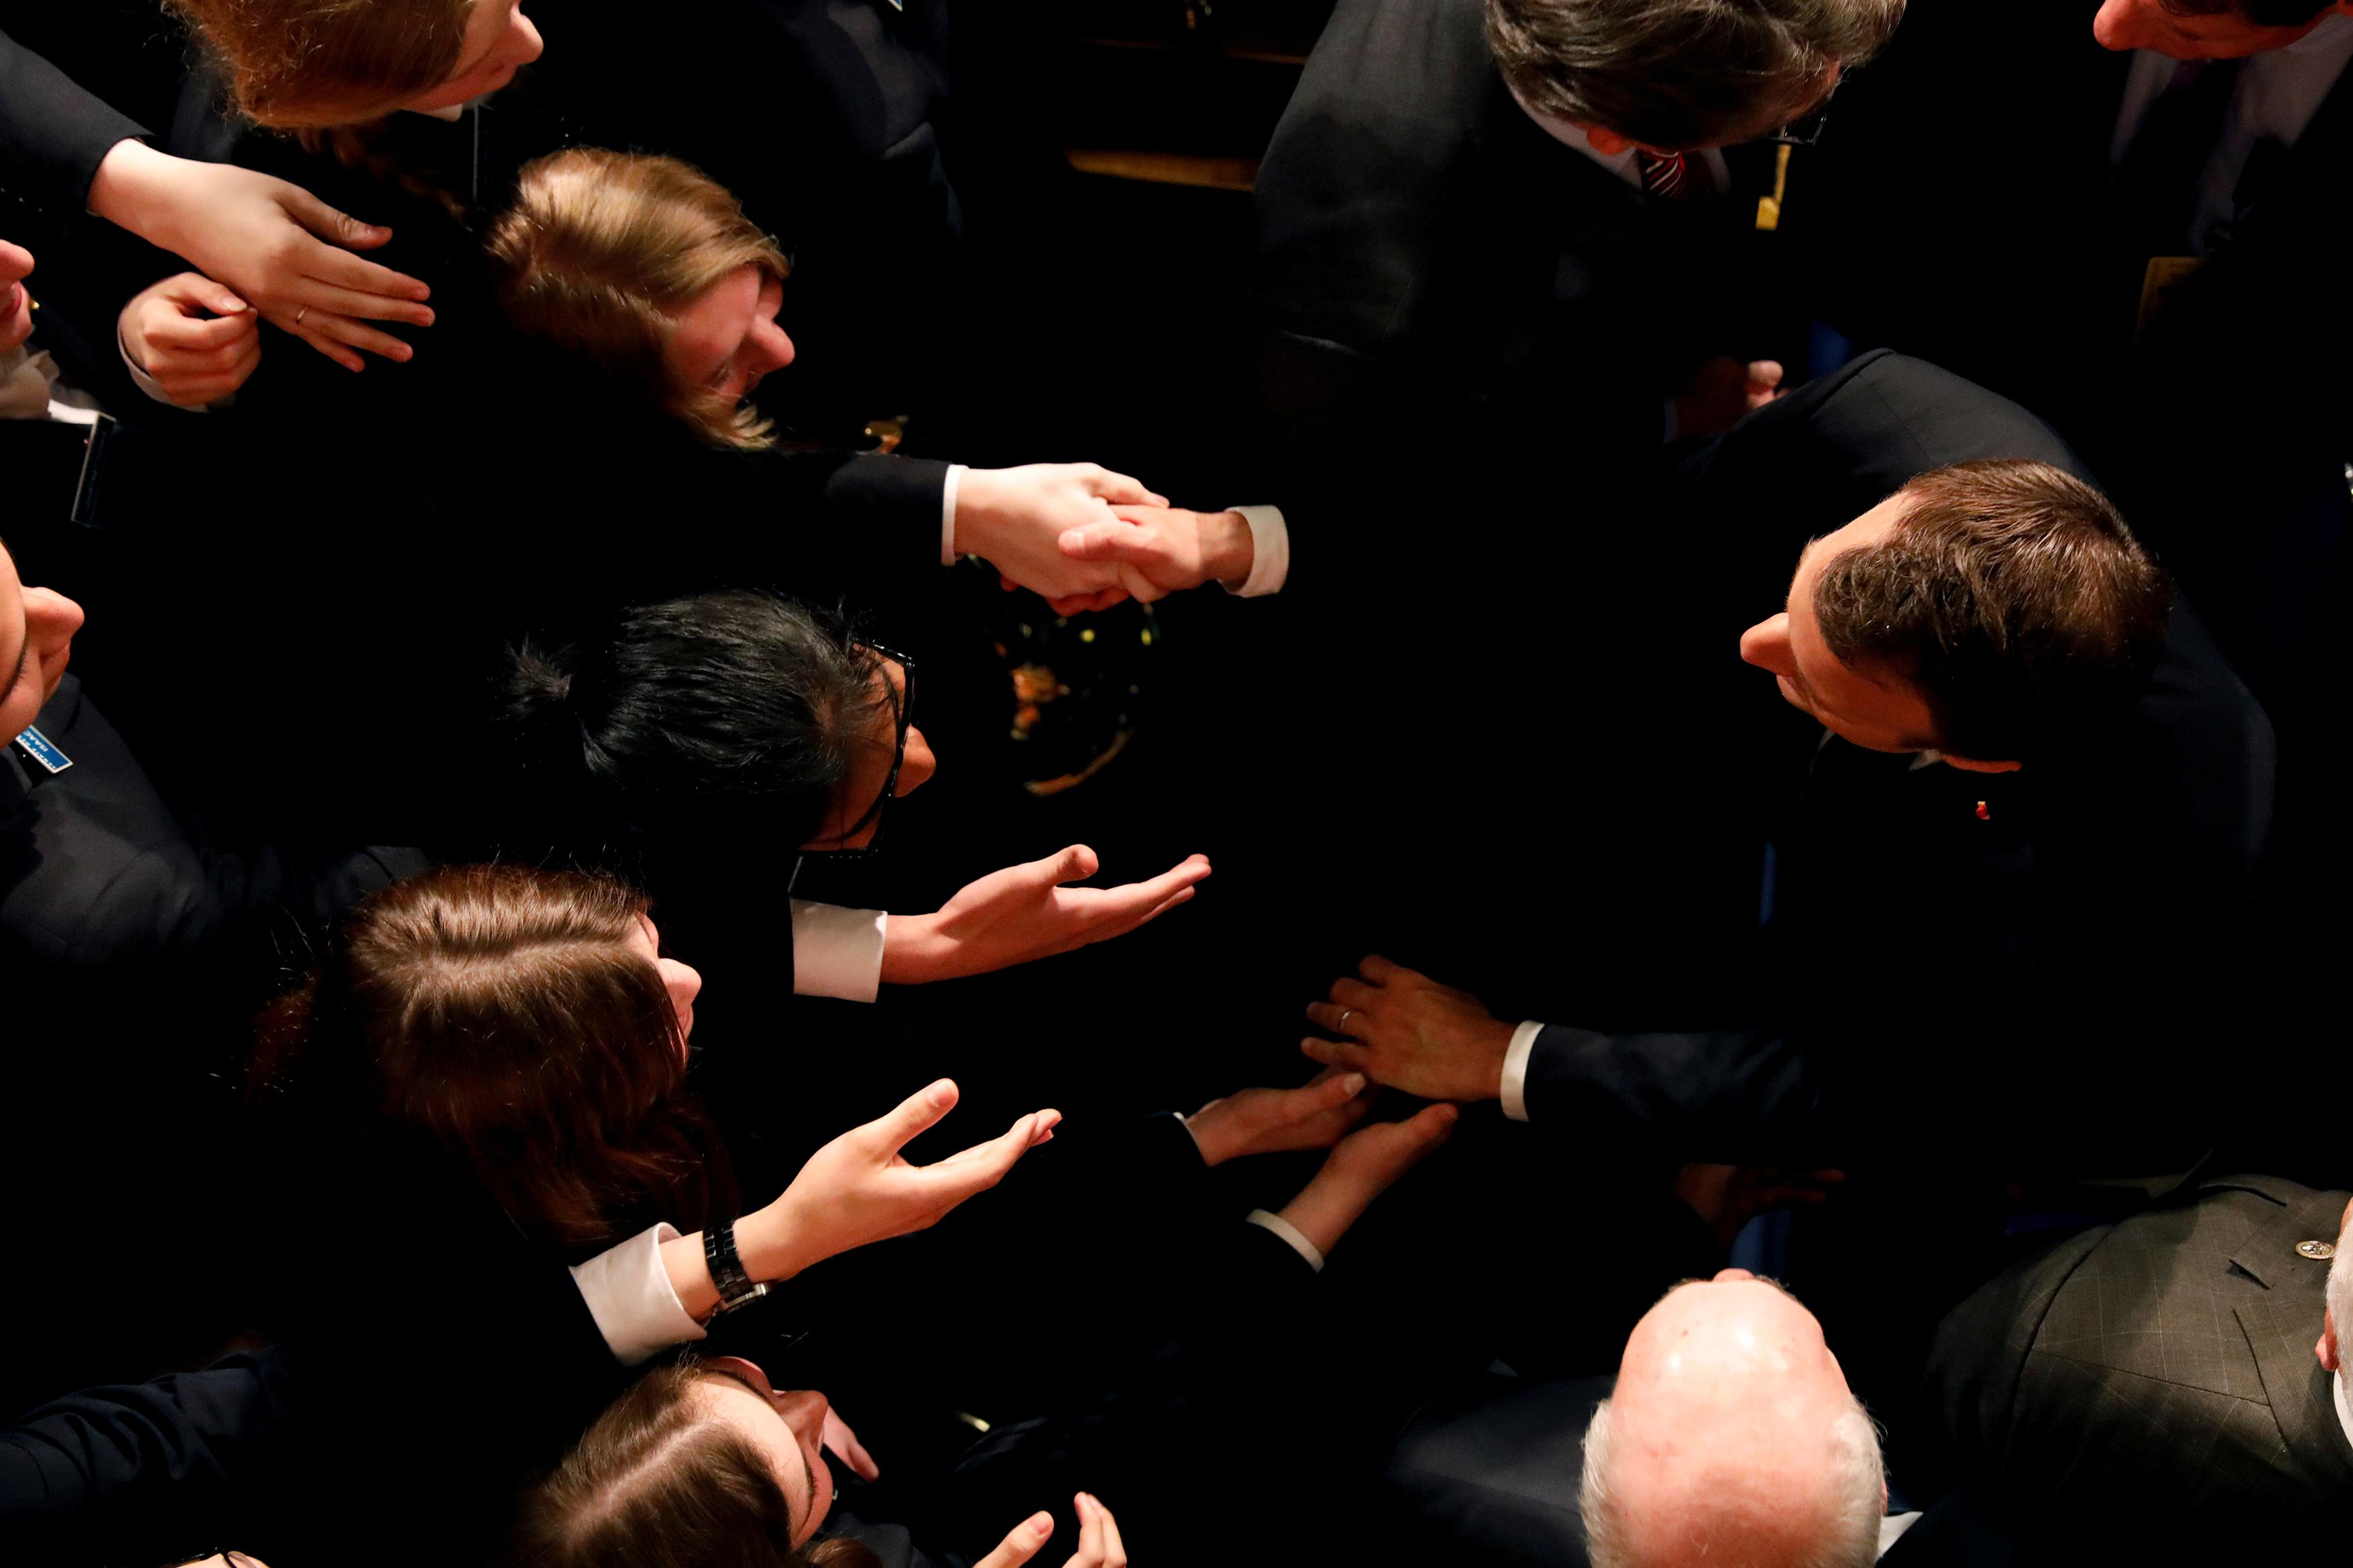 <p>French President Emmanuel Macron greets Senate Pages after addressing a joint session of Congress at the U.S. Capitol in Washington, April 25, 2018. (Photo: Aaron P. Bernstein/Reuters) </p>